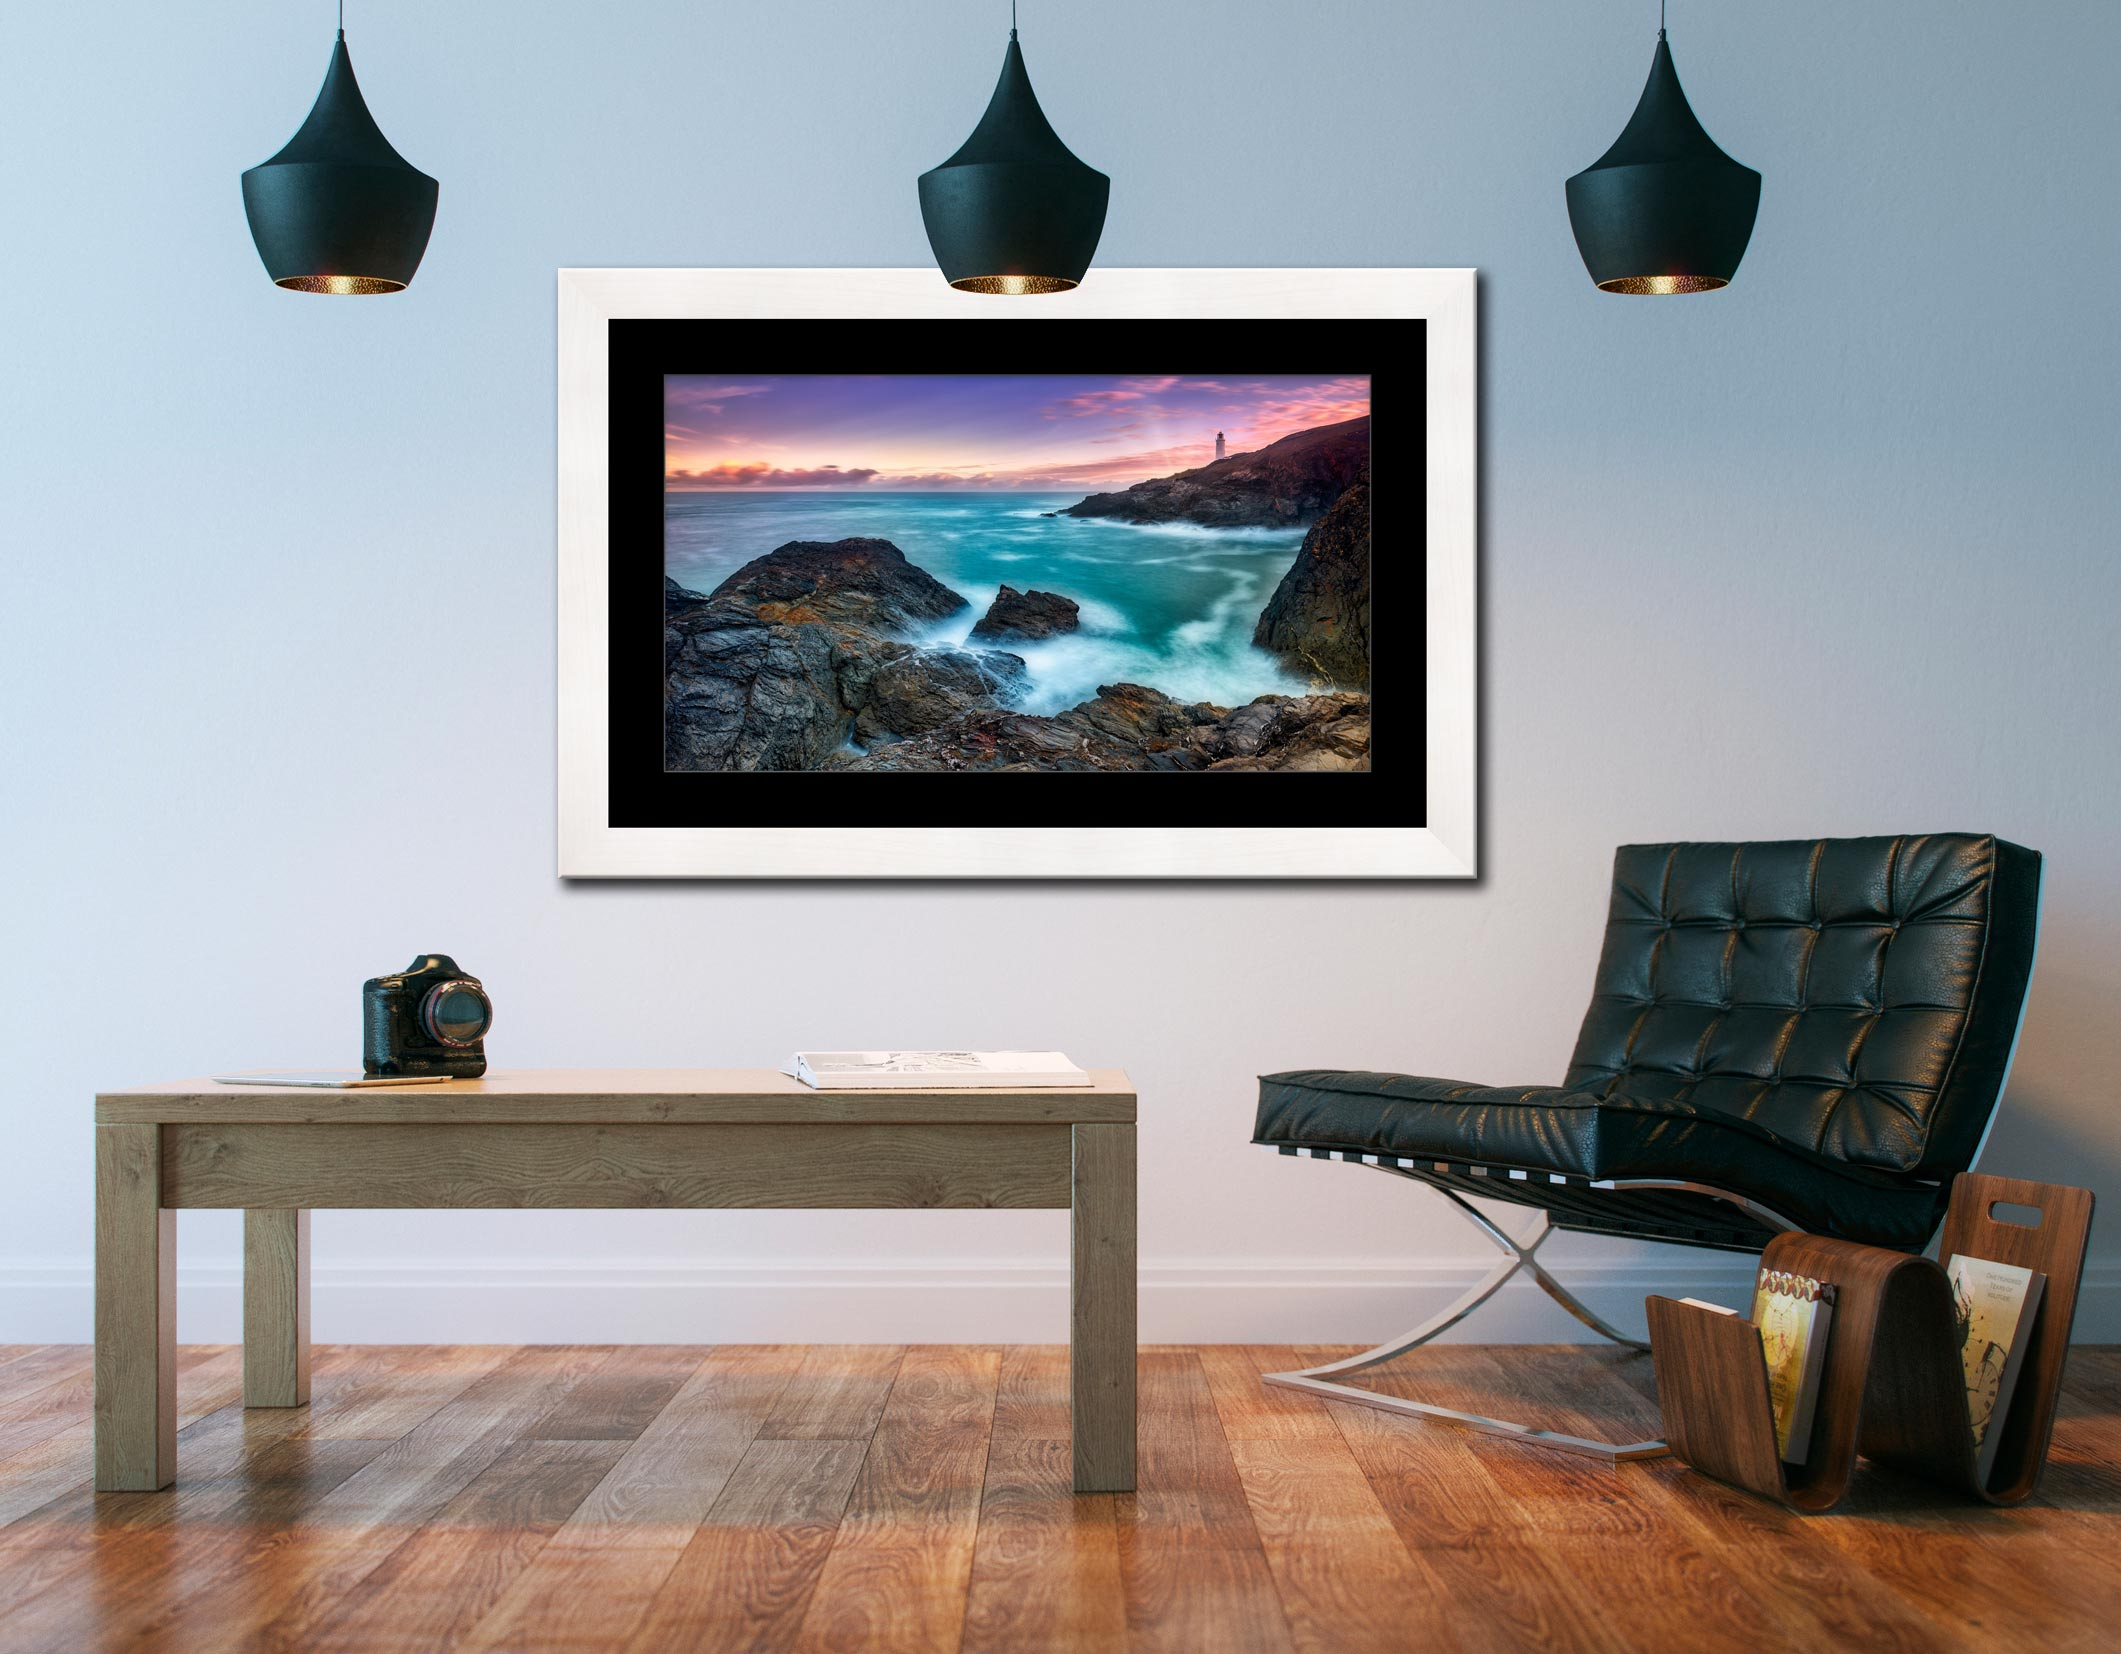 Stinking Cove Trevose Head Sunrise - Framed Print with Mount on Wall